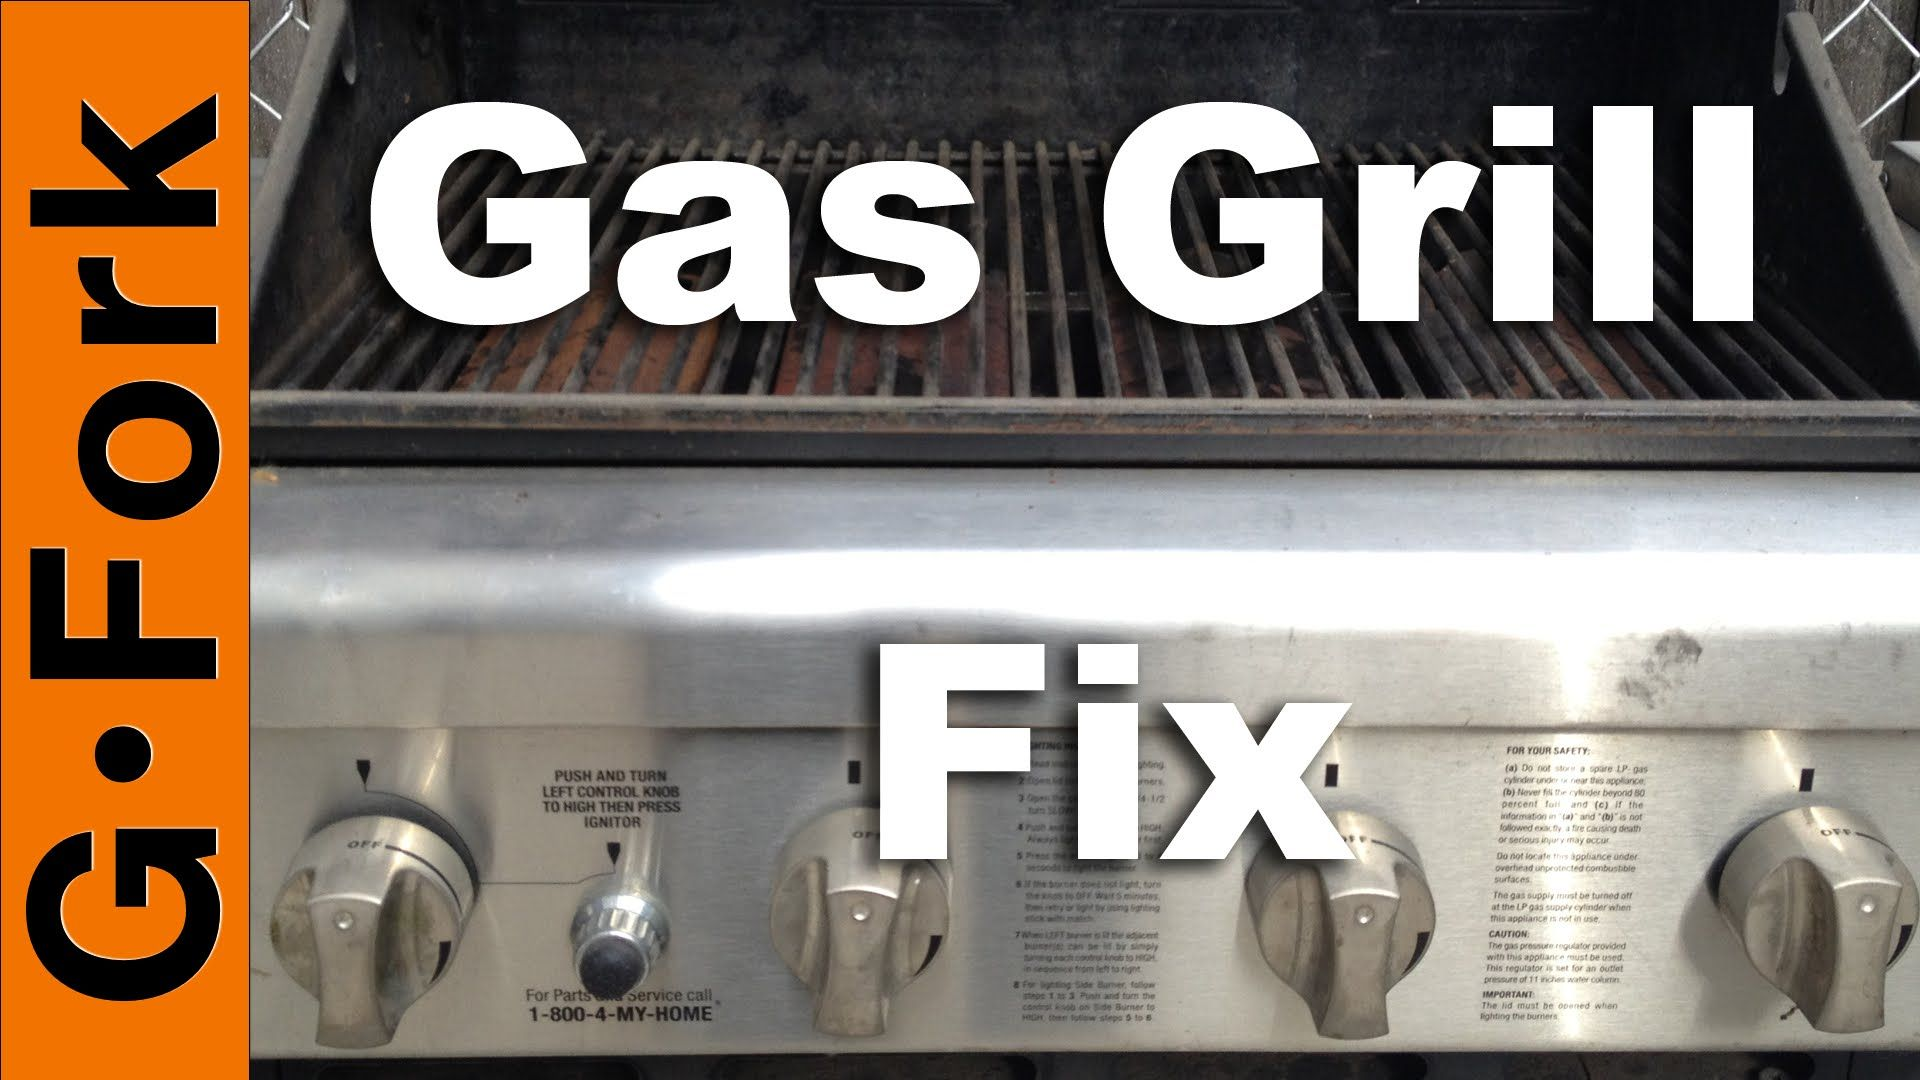 Gas Grill Repair Grill Wont Light Or Stay Lit Gardenfork Gas Grill Propane Grill Propane Gas Grill